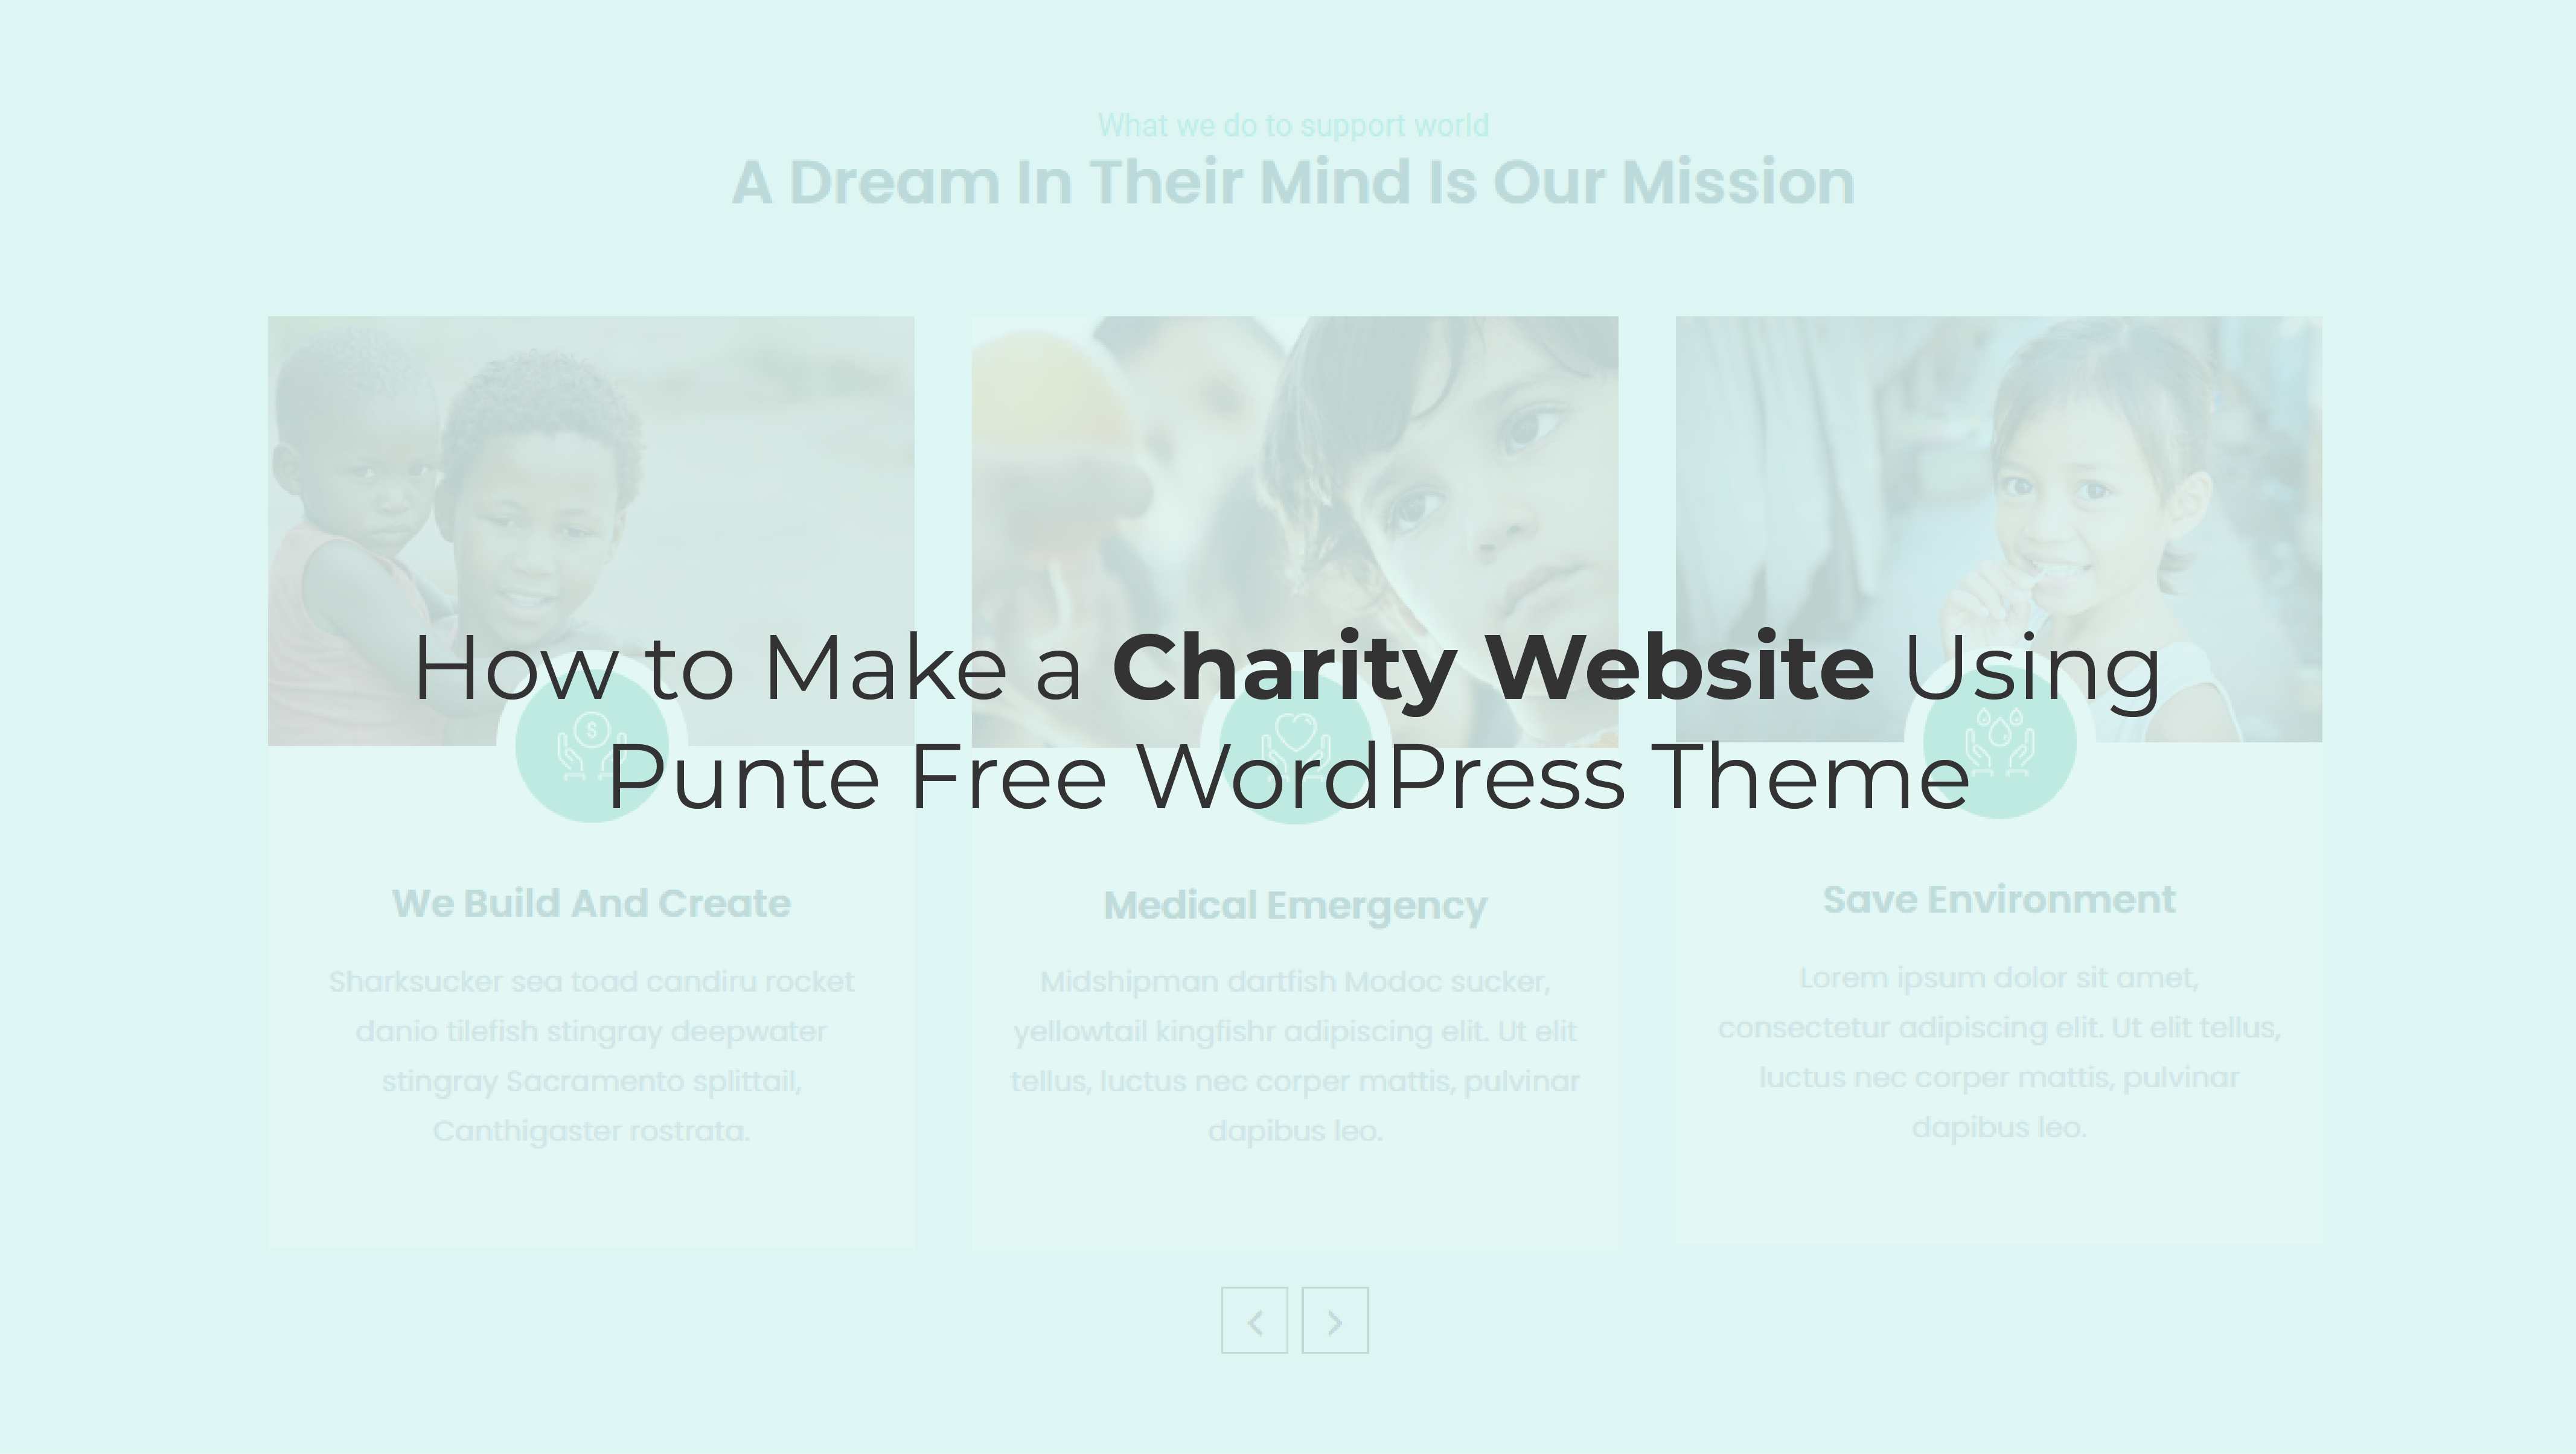 How to Create a Charity Website using Punte Free WordPress Theme